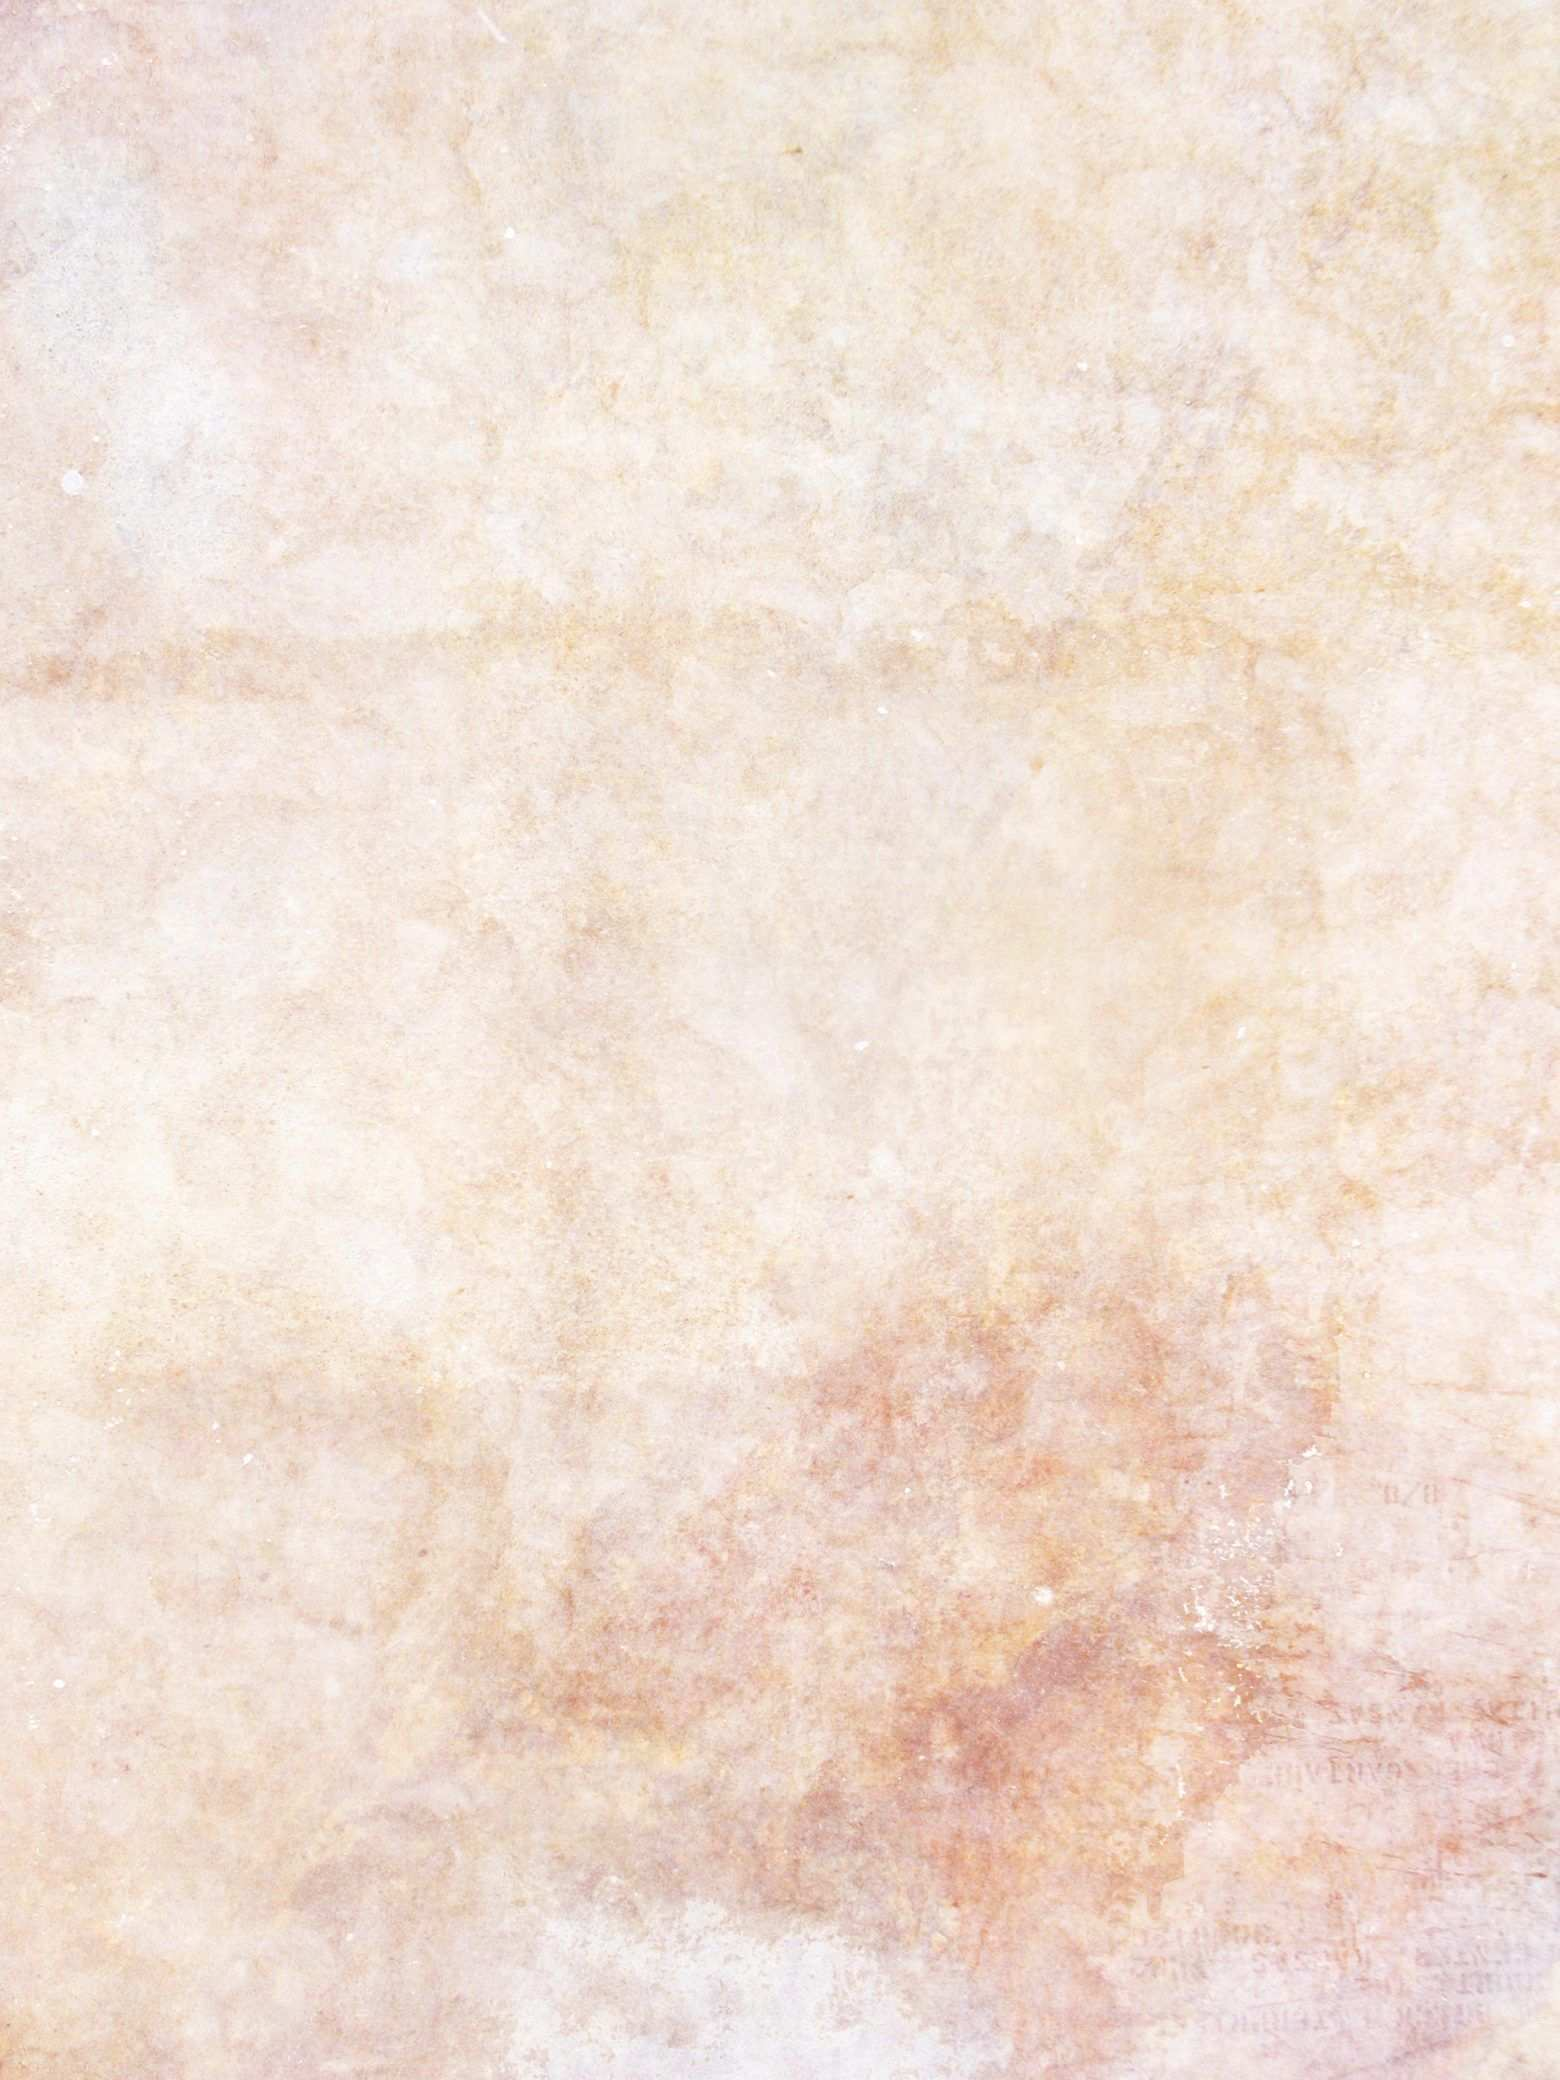 Free Delicate Grunge Texture Texture L T Free Delicate Grunge Texture Texture L T Estas En El Lugar Co In 2020 Photoshop Textur Aquarell Textur Hintergrundmuster